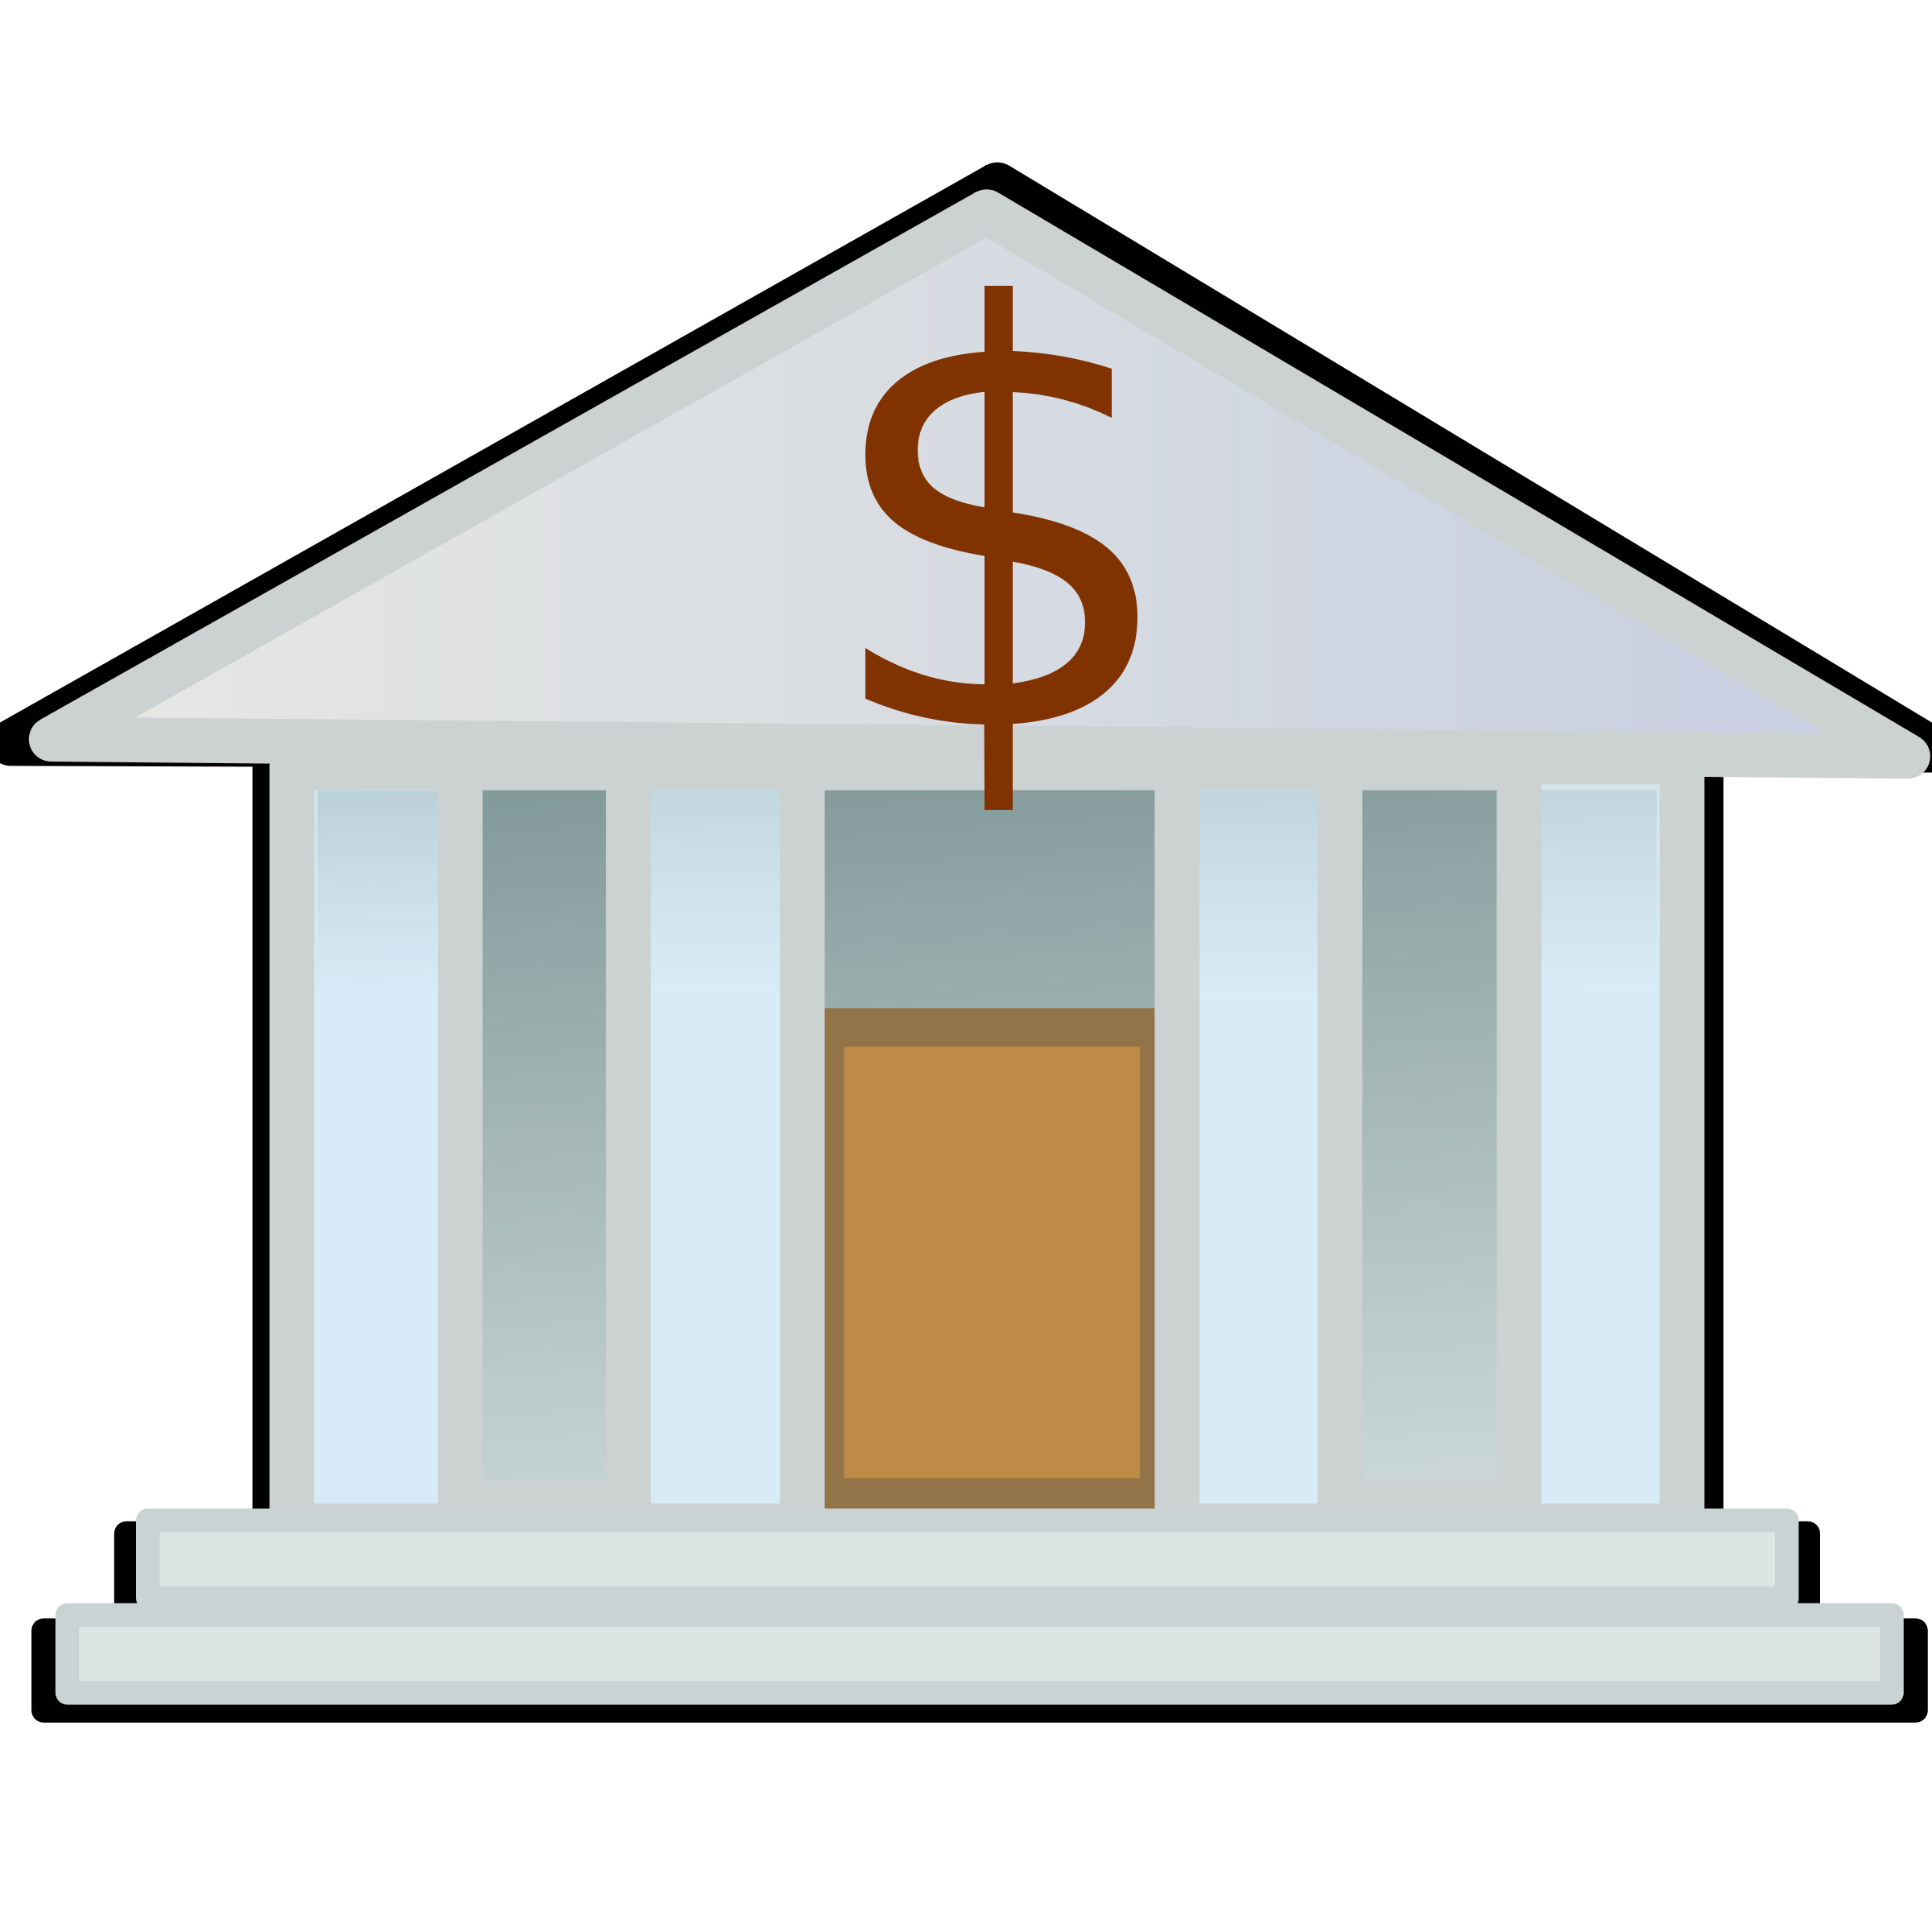 Banks in clipart picture download Free Banks Cliparts, Download Free Clip Art, Free Clip Art on ... picture download